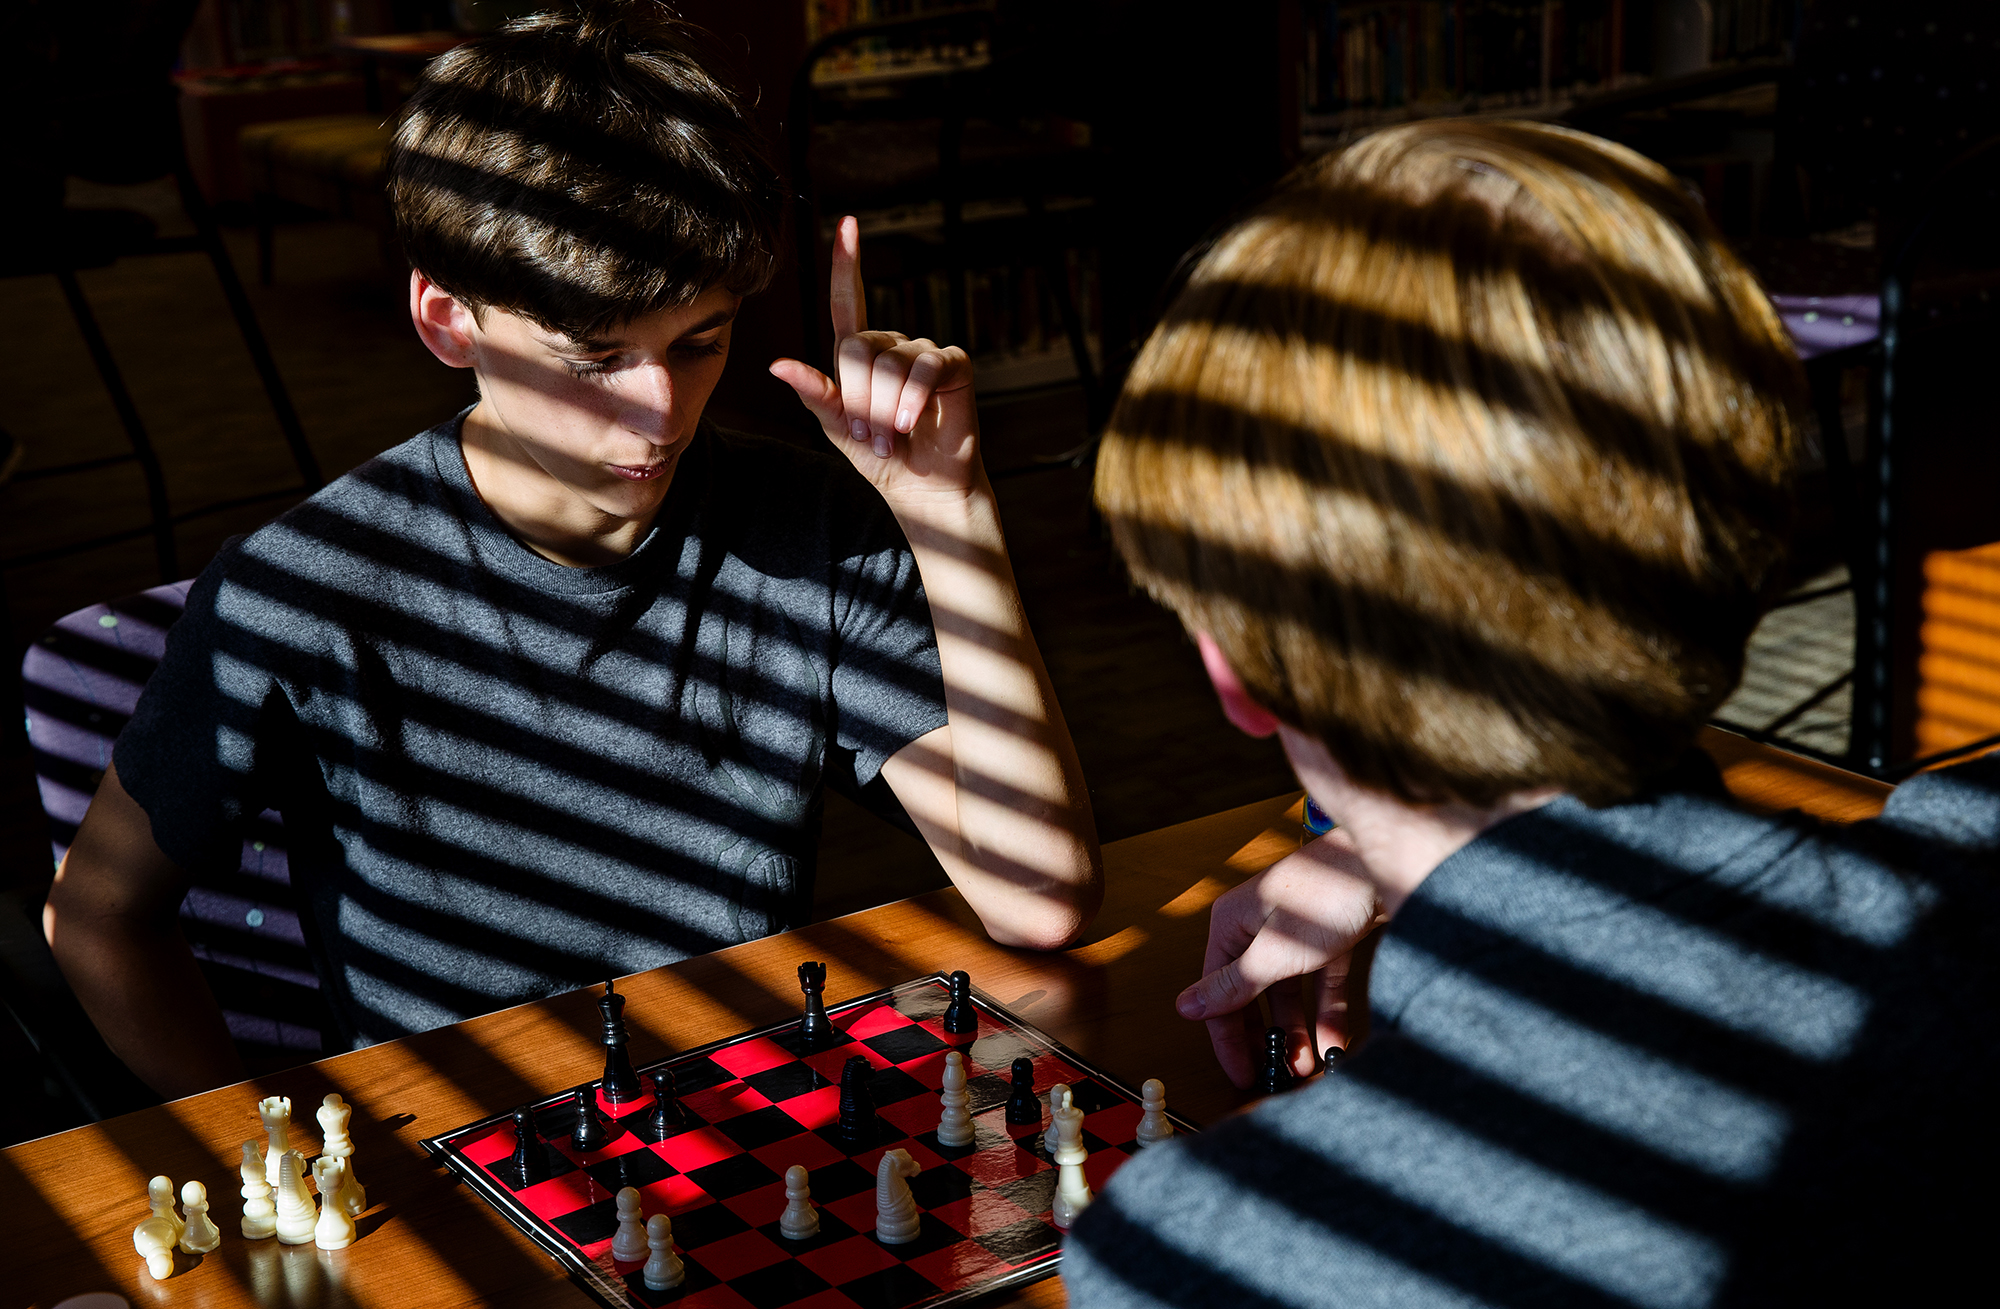 Bisected by the shadows cast by sunlight coming through the window blinds, Tyler Vinger, left, prepares to make his next move as he and Gage Gathman play chess at the Williamsville Public Library Thursday, Sept. 13, 2018. The library makes boards available to players of any age Thursday from 3:30 p.m. to 6 p.m.. The library will schedule a tournament later in the fall if enough participants are interested. [Ted Schurter/The State Journal-Register]